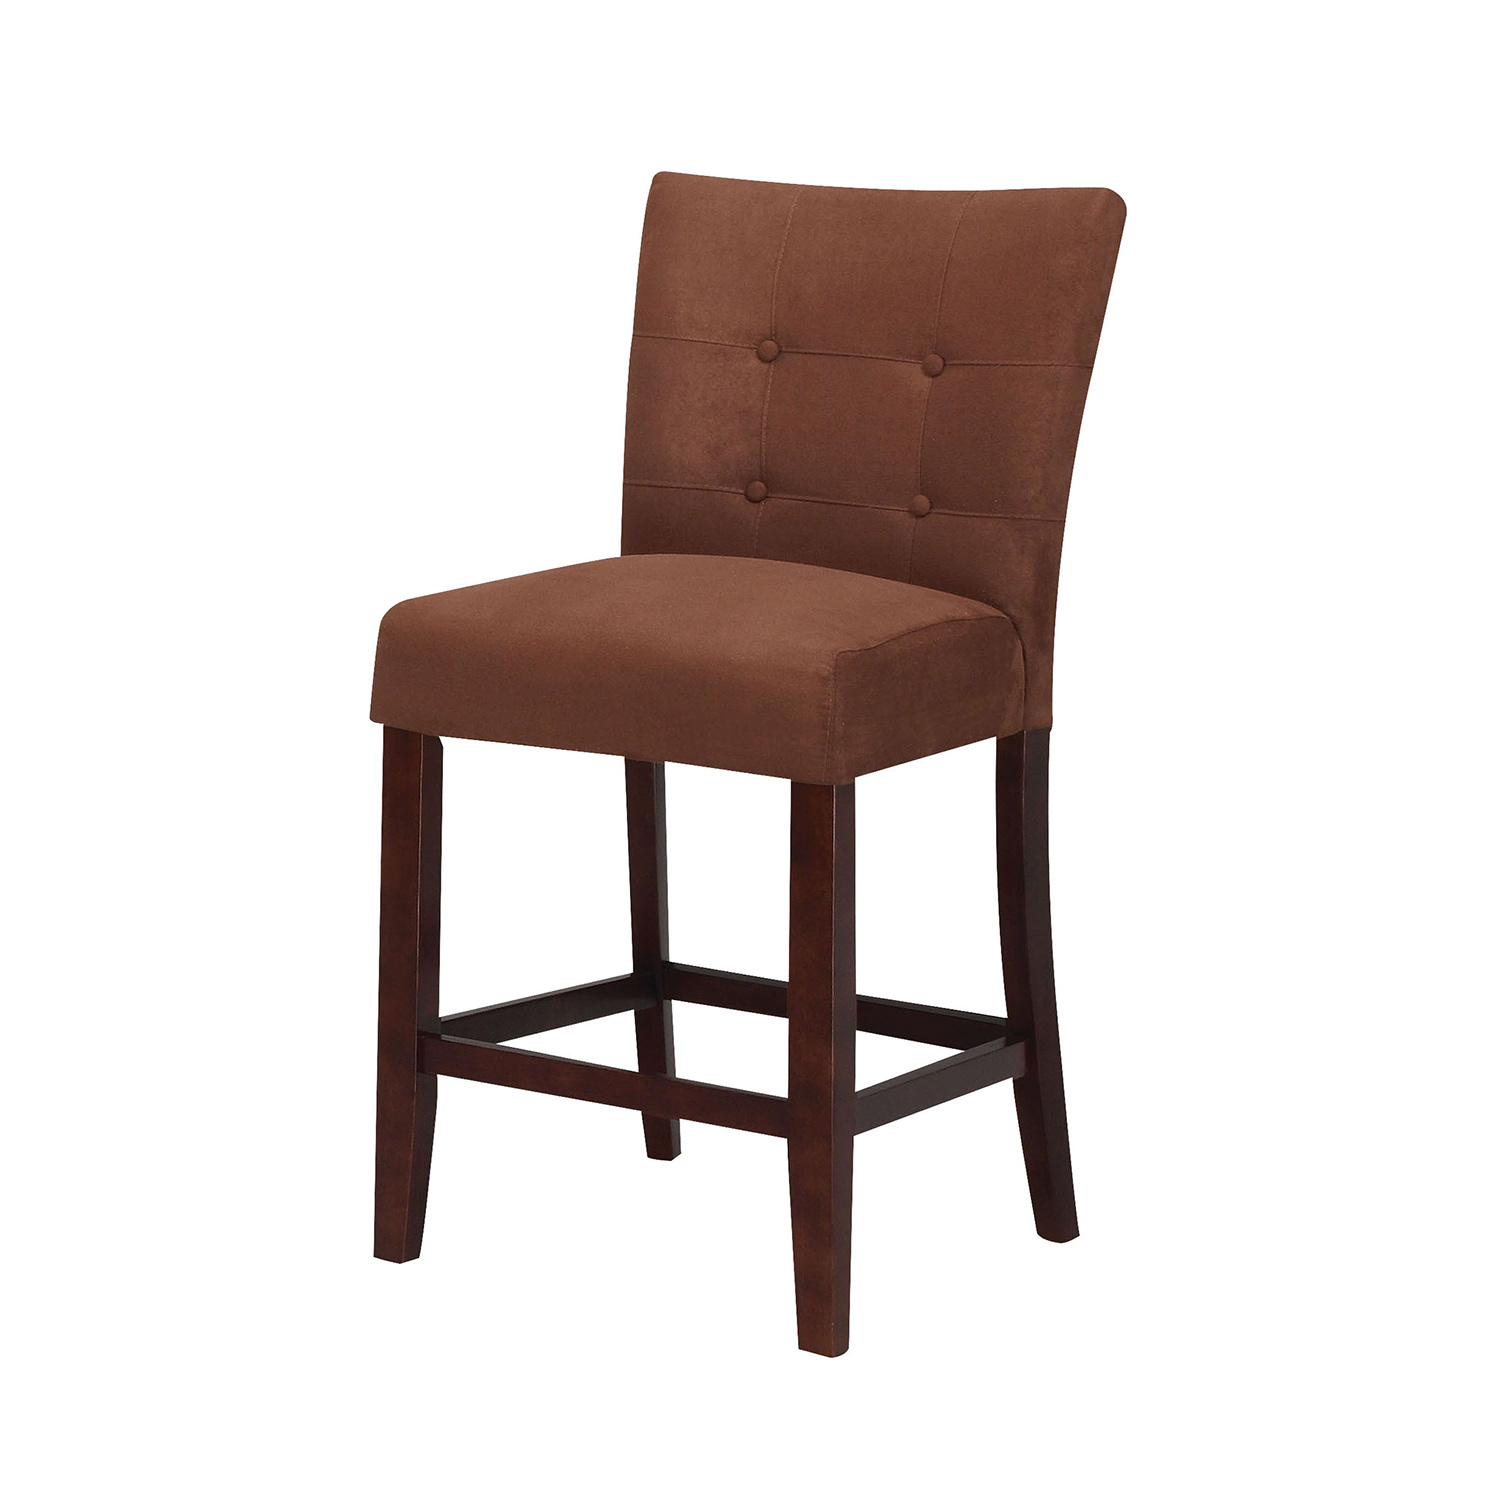 Acme Baldwin Counter Height Chair - Chocolate/Walnut